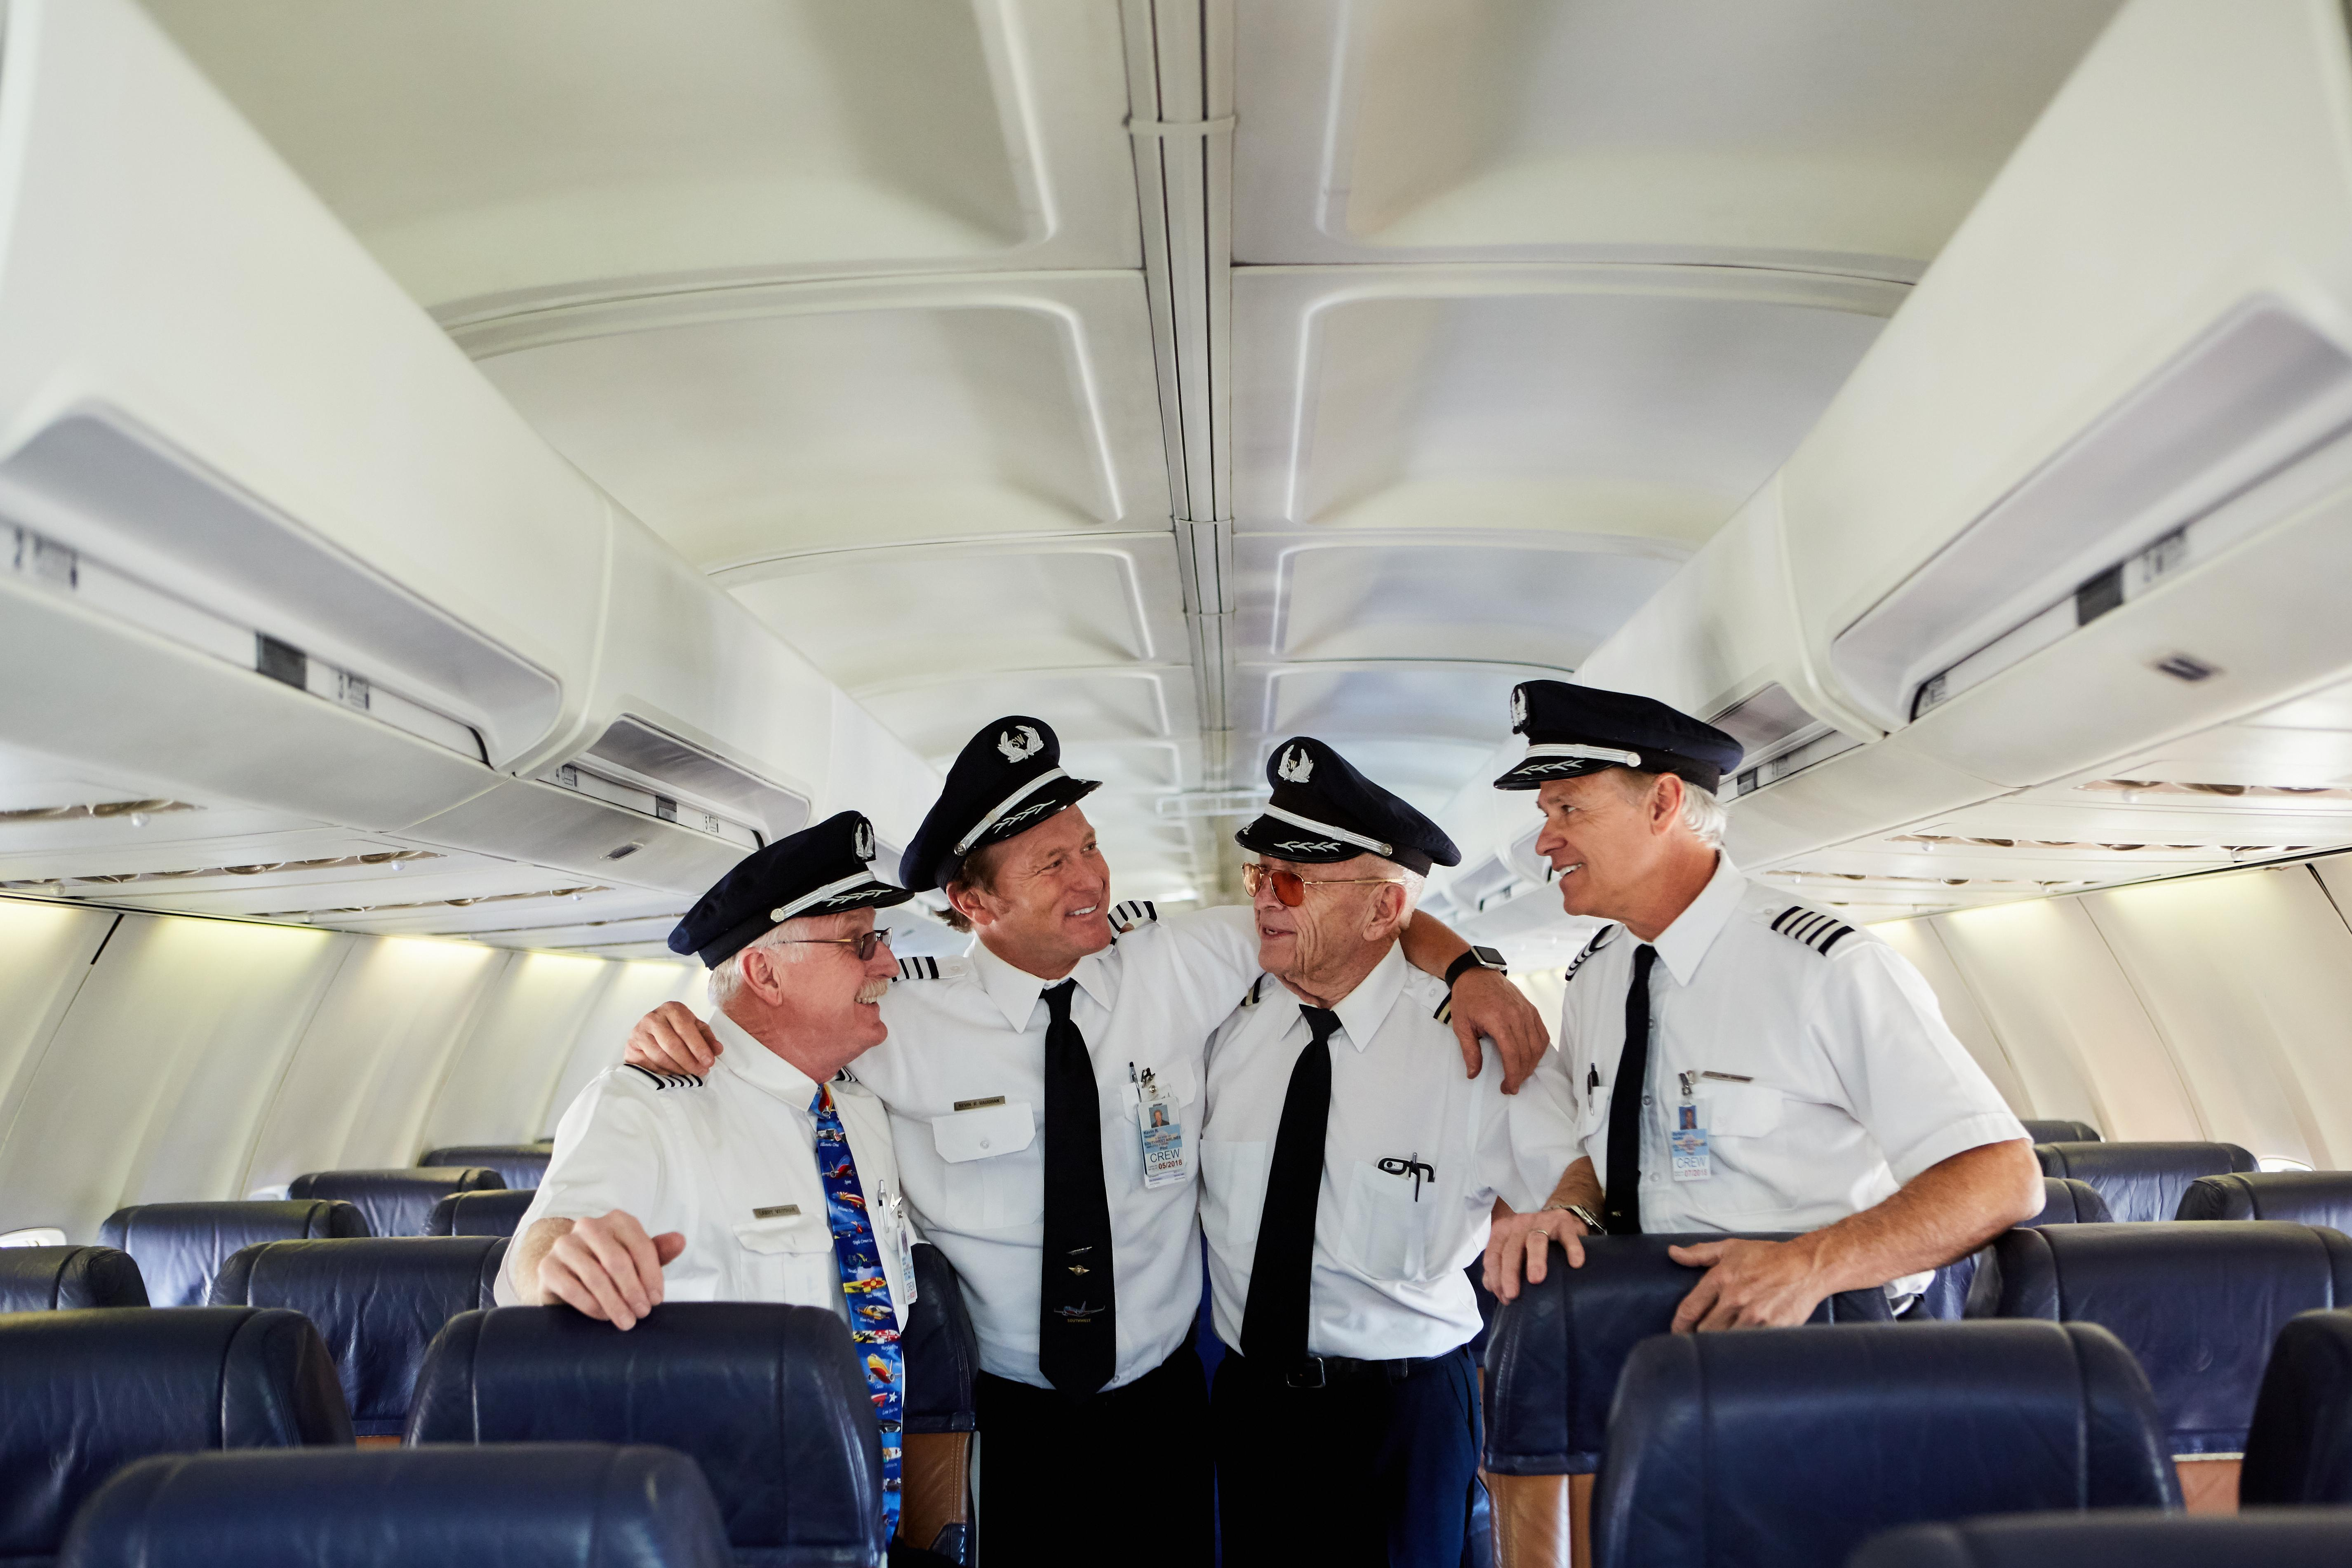 Co-pilots continue father's flight legacy